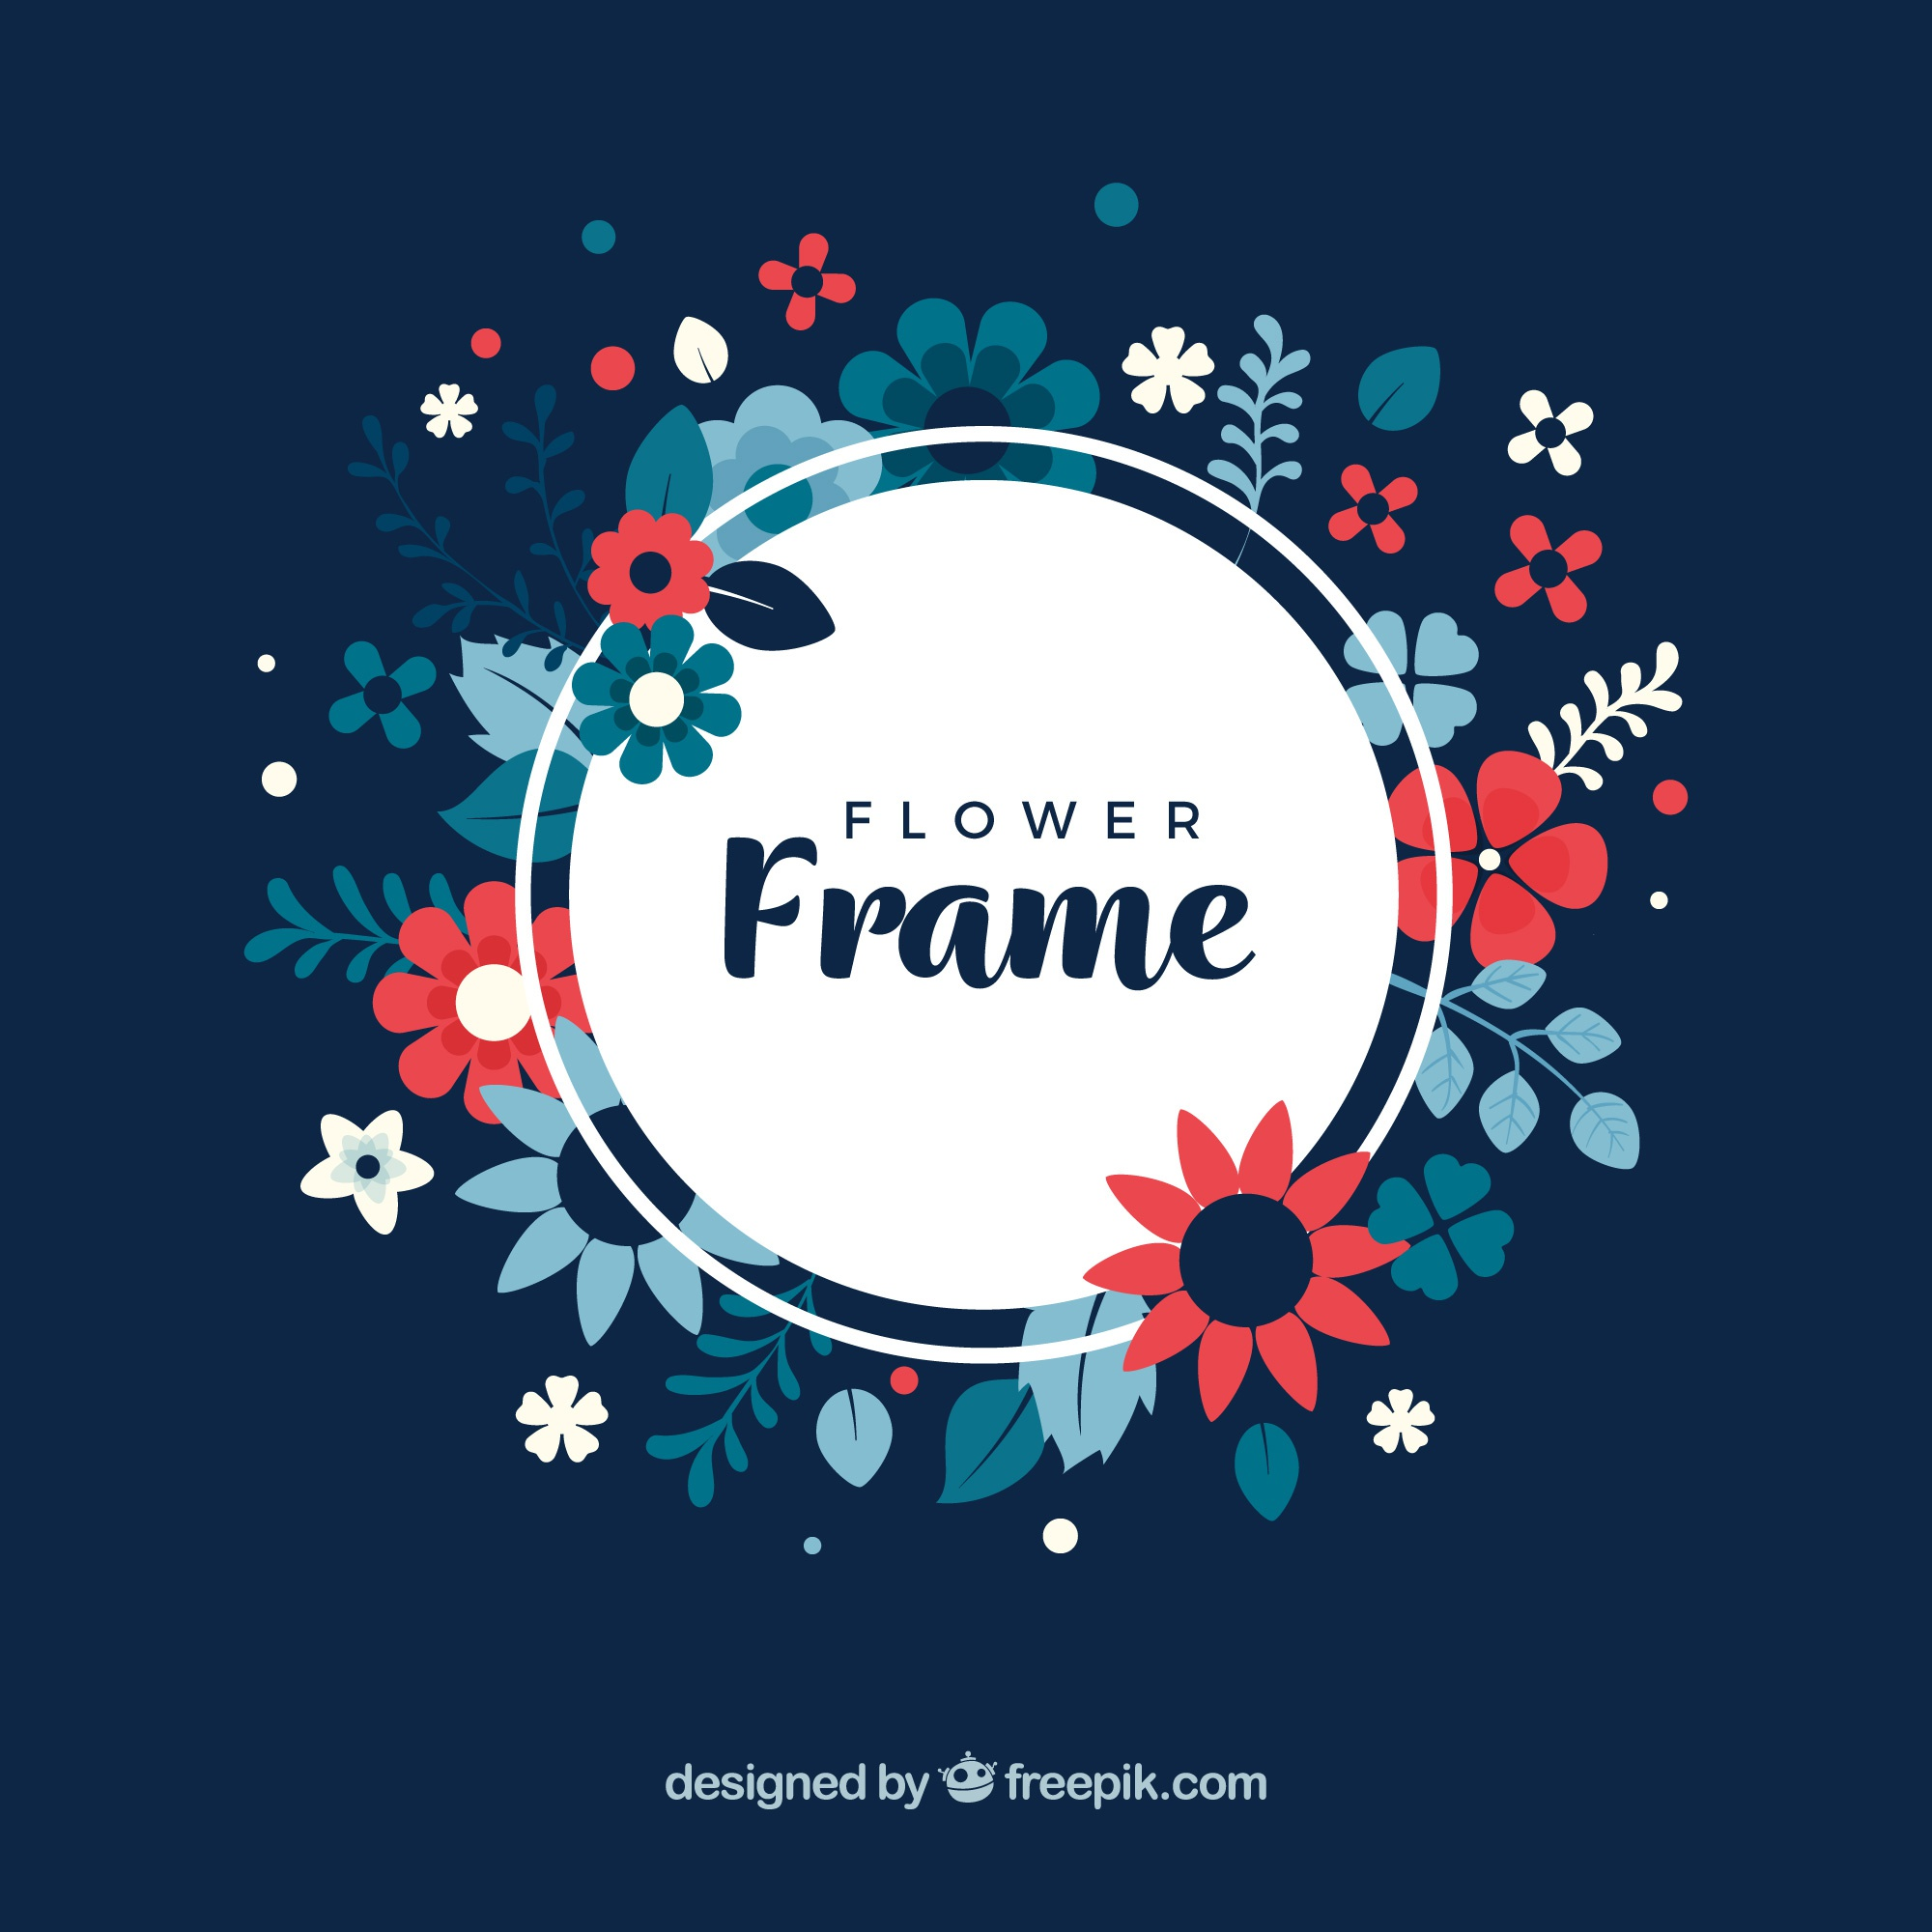 Floral frame with dark background